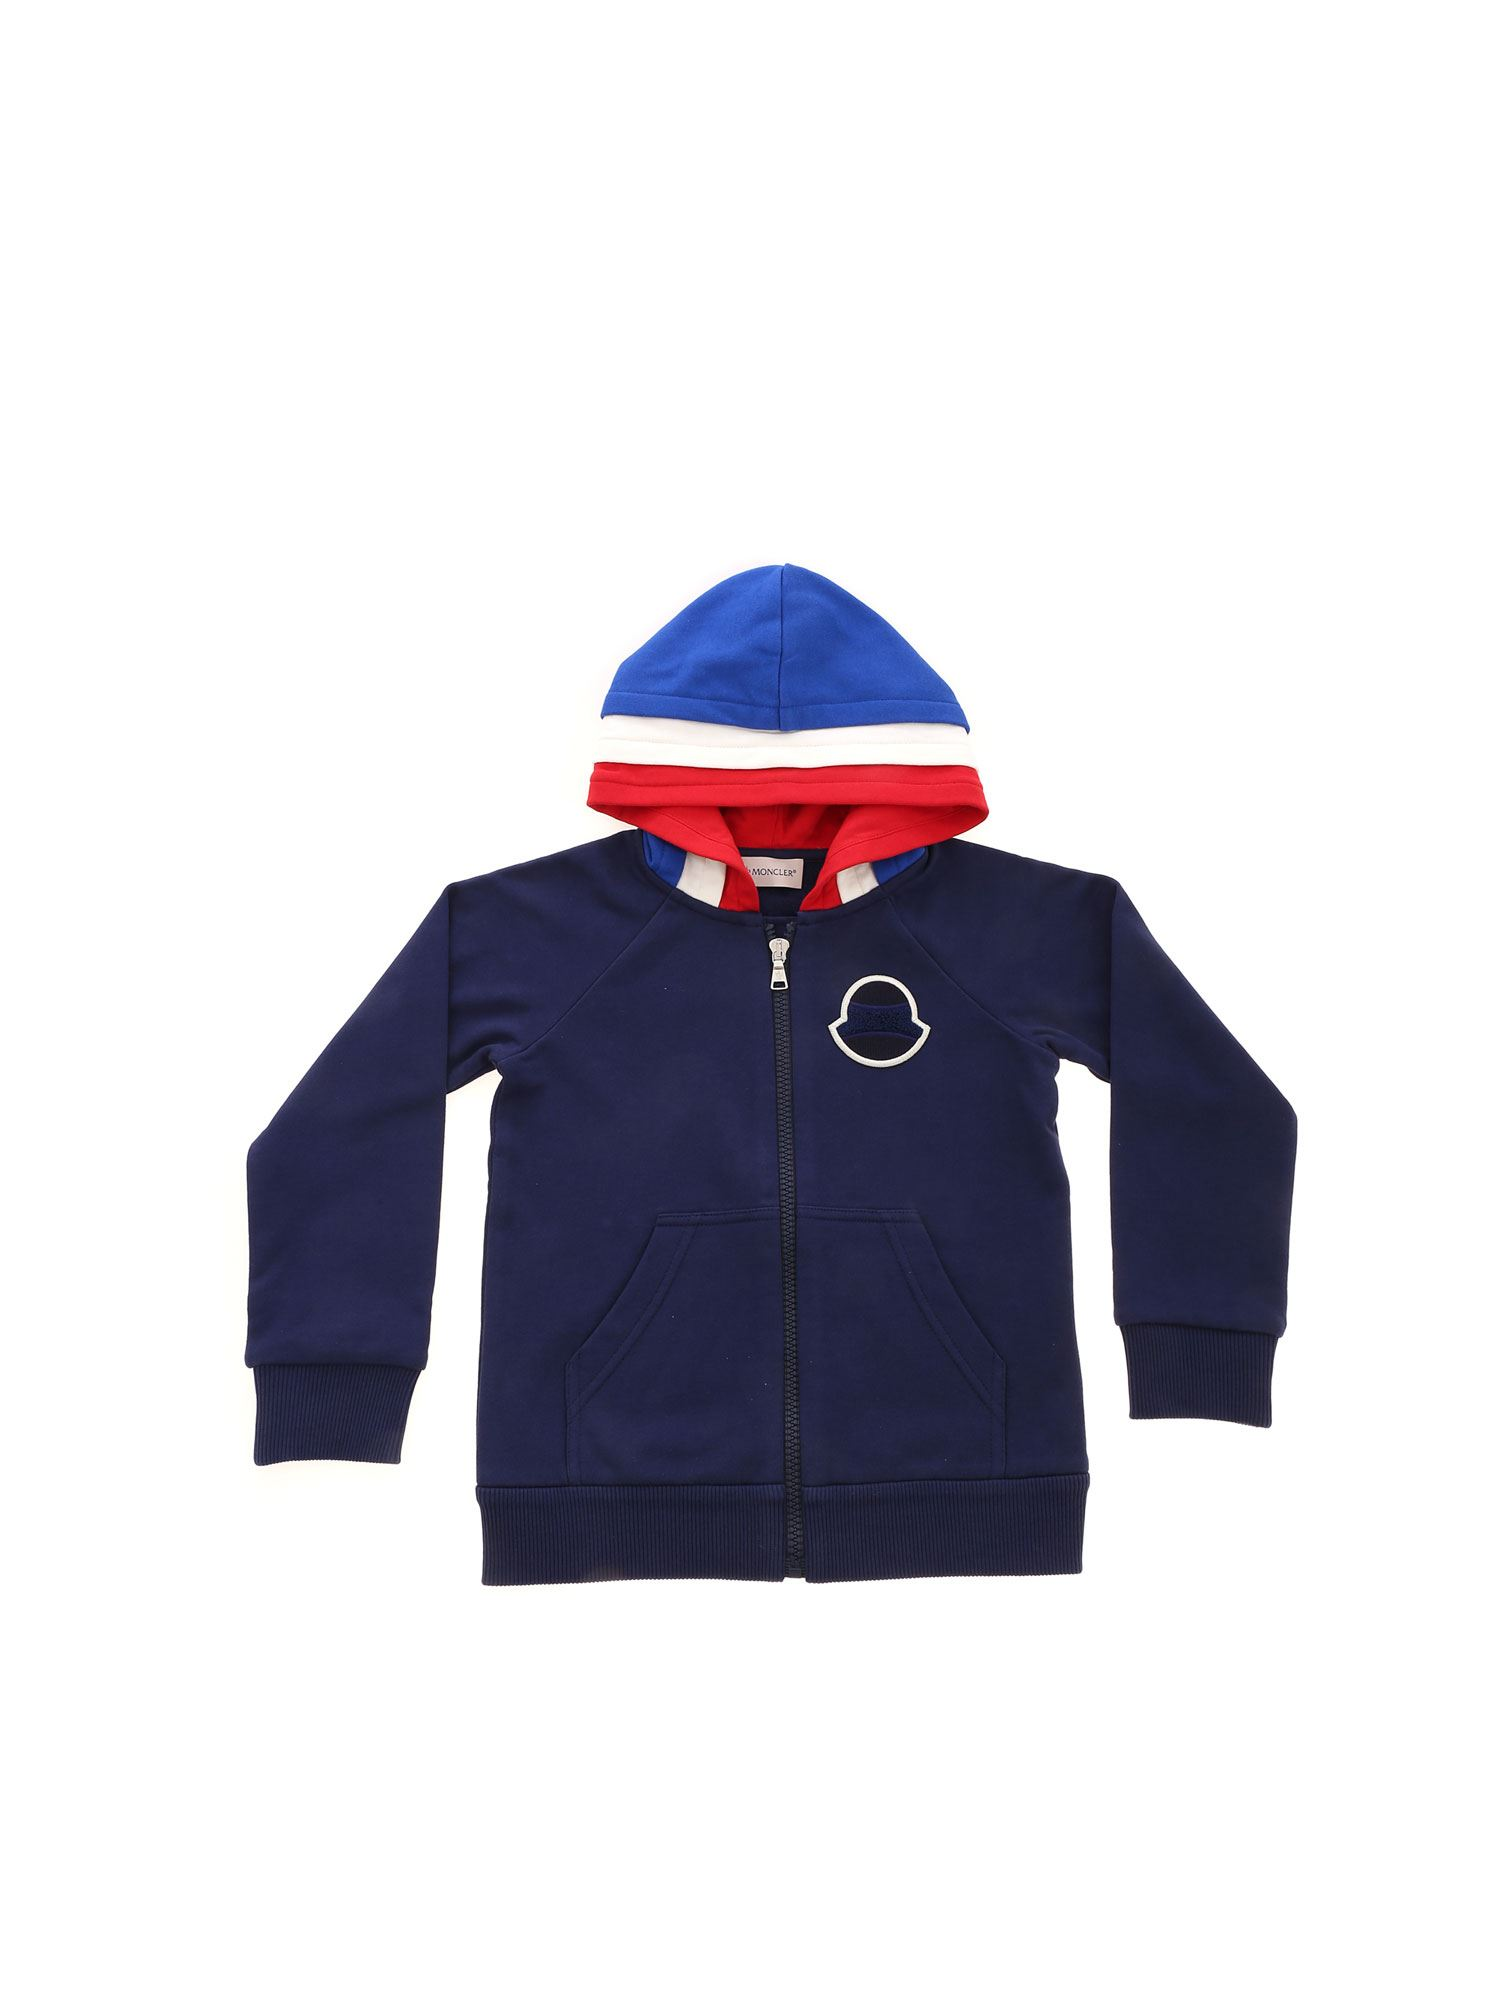 Moncler Jr Cottons TONE-ON-TONE LOGO PATCH SWEATSHIRT IN BLUE